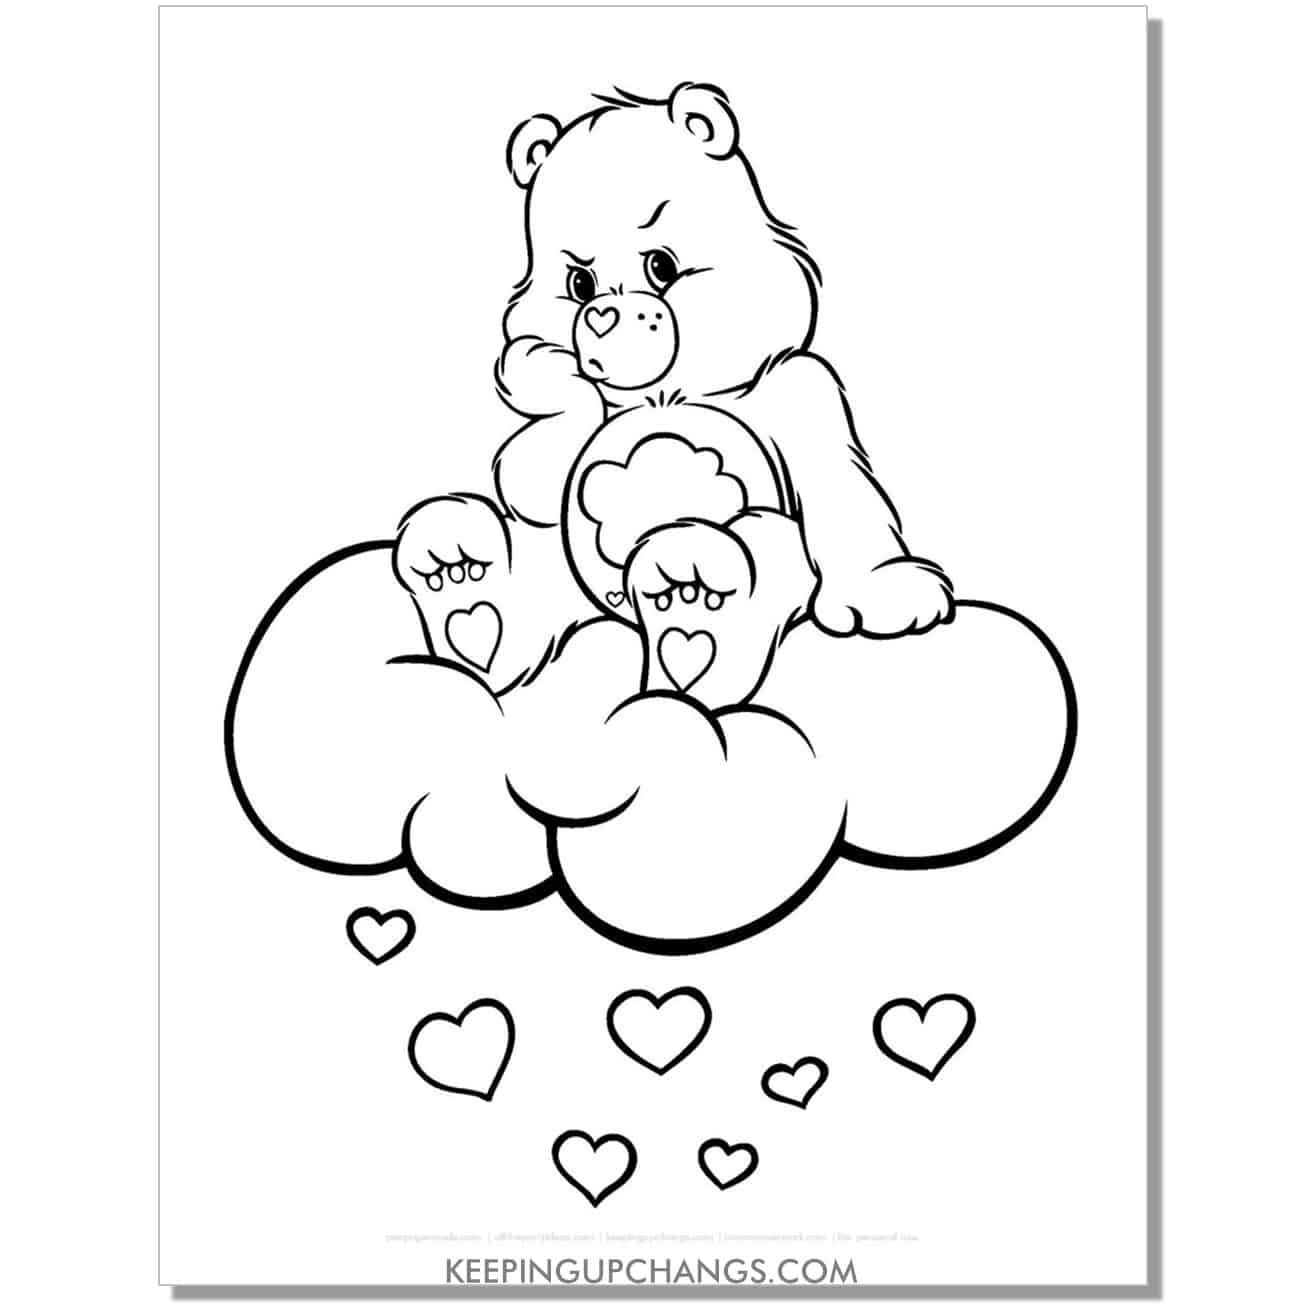 gloomy care bear coloring page sitting on cloud.